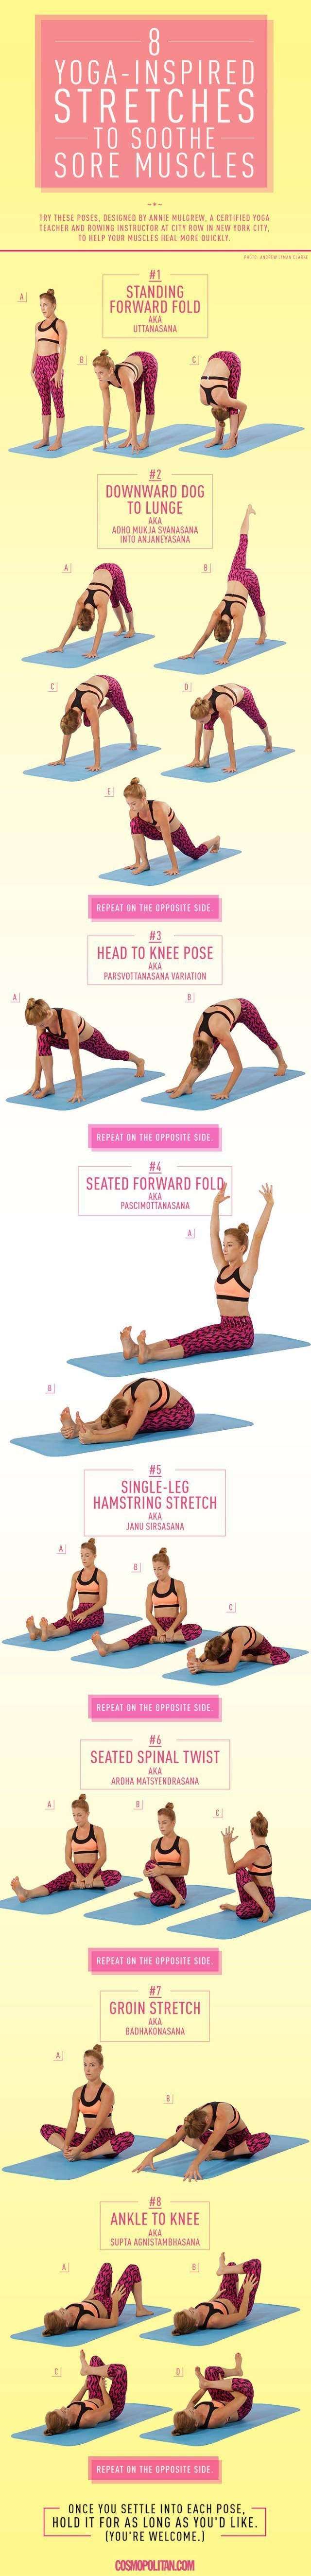 Yoga Stretches for Sore Muscles by cosmopolitan: When you work out, your muscles contract and shorten, which can leave you feeling stiff. Stretching increases blood flow to the muscles to relieve this stiffness, lengthen muscles, and improve your flexibil